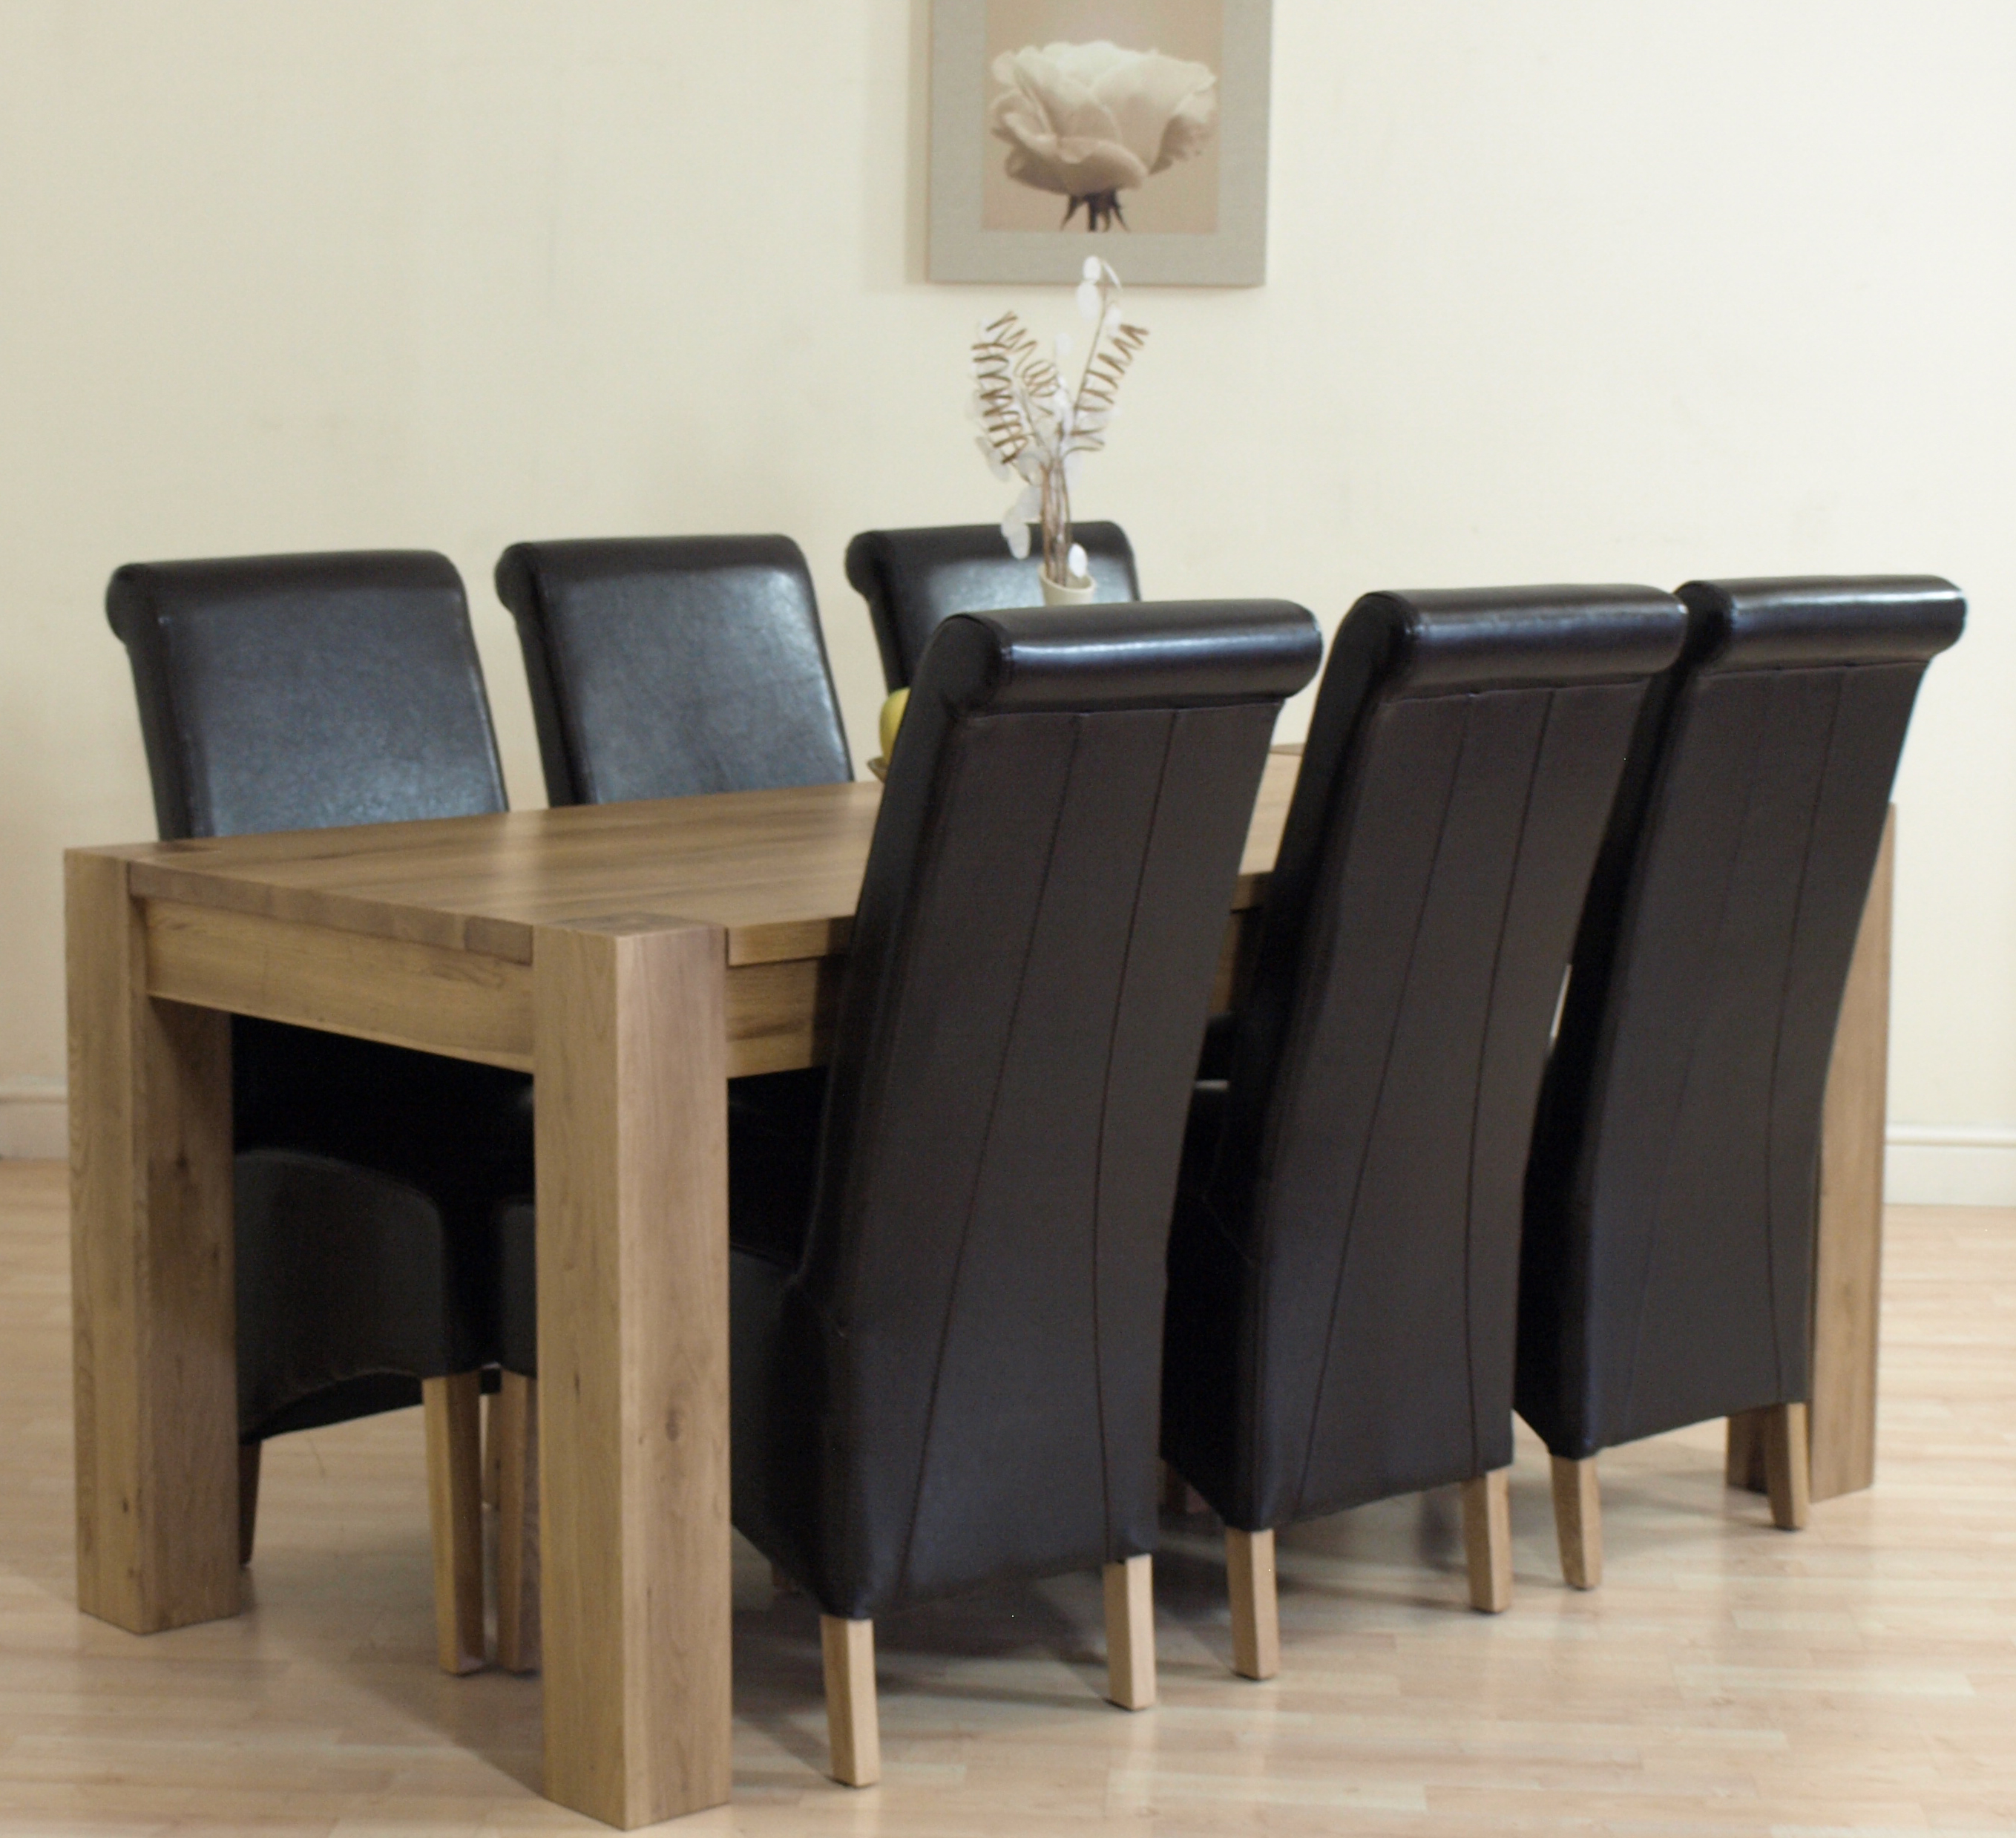 Ebay Uk Dining Table And 6 Chairs Chunky Solid Oak  : Kubabrown6L2 from honansantiques.com size 2717 x 2477 jpeg 2887kB